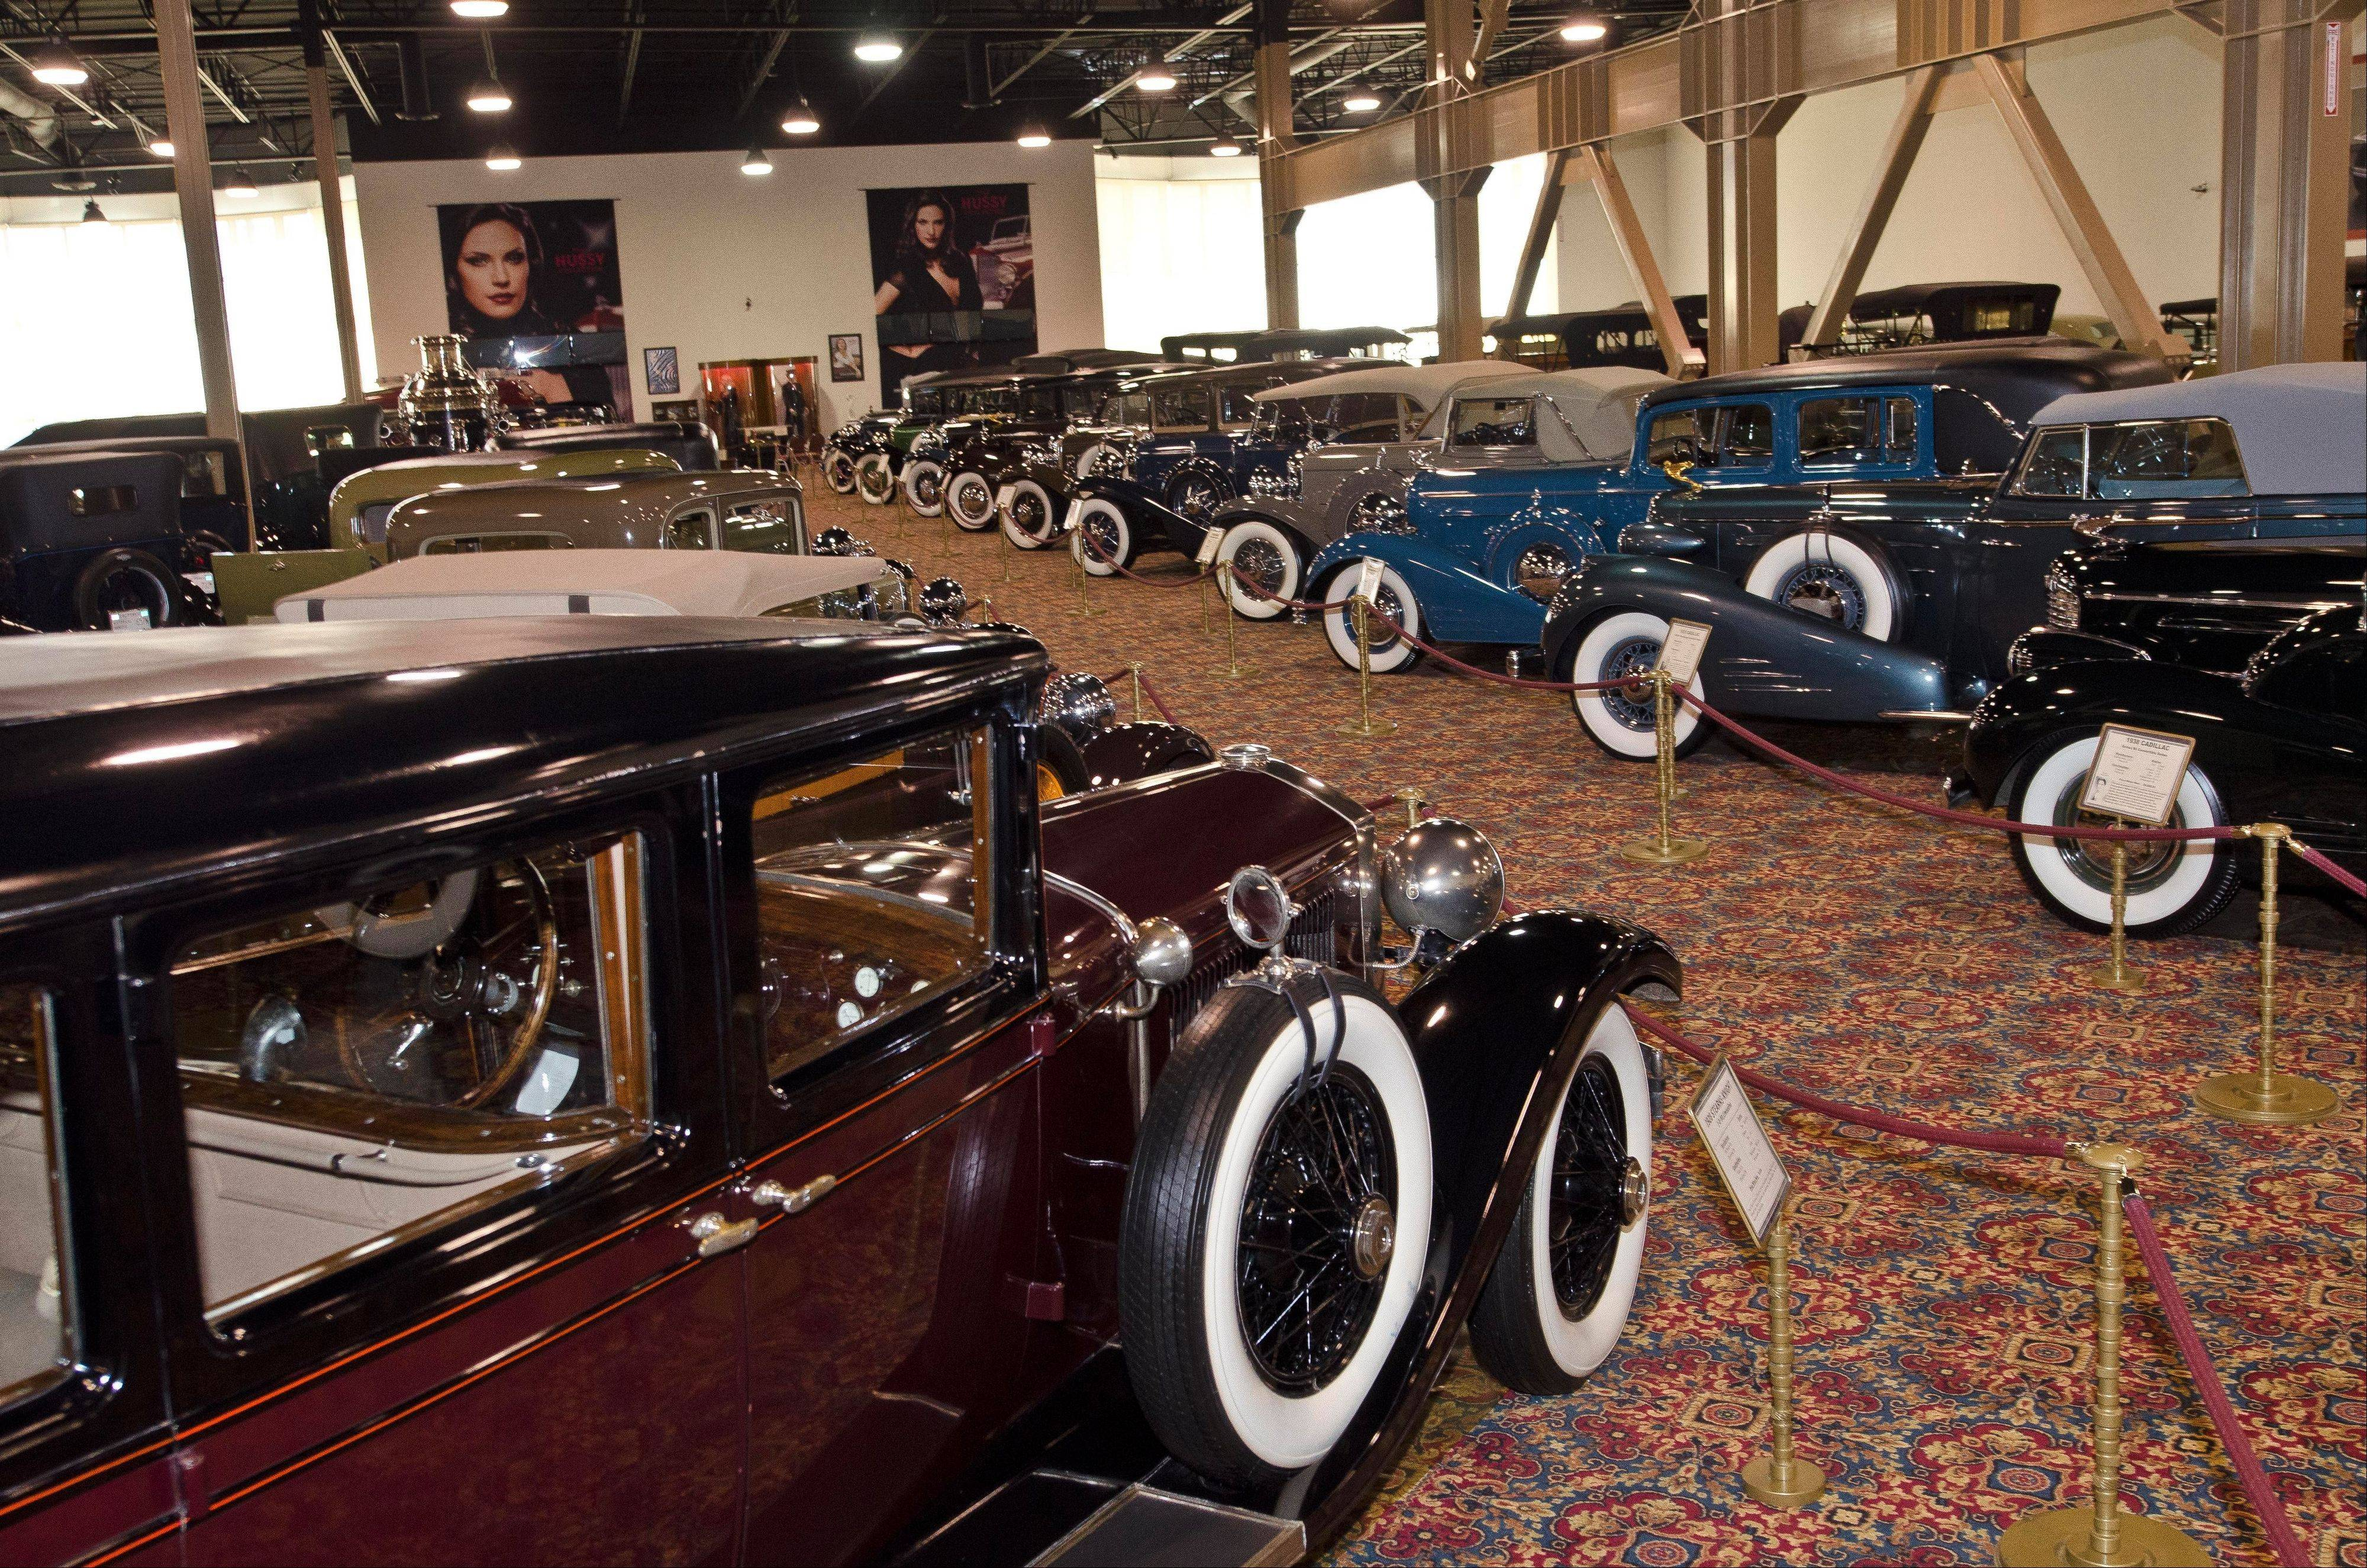 The museum now displays 200 vehicles, with another 60 cars undergoing restoration.